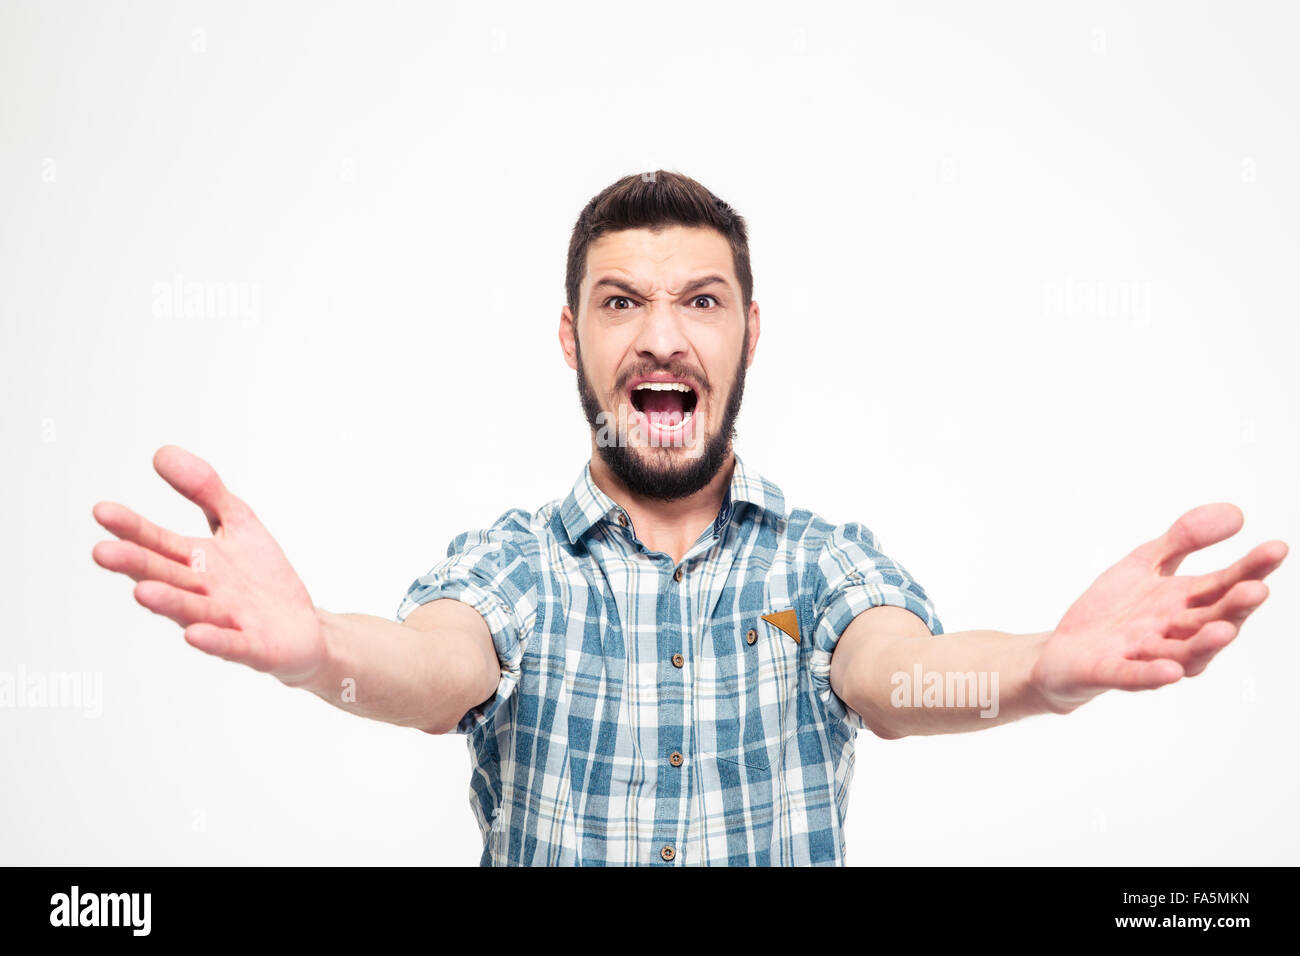 Funny concentrated young man with beard in checkered shirt singing loudly over white background - Stock Image